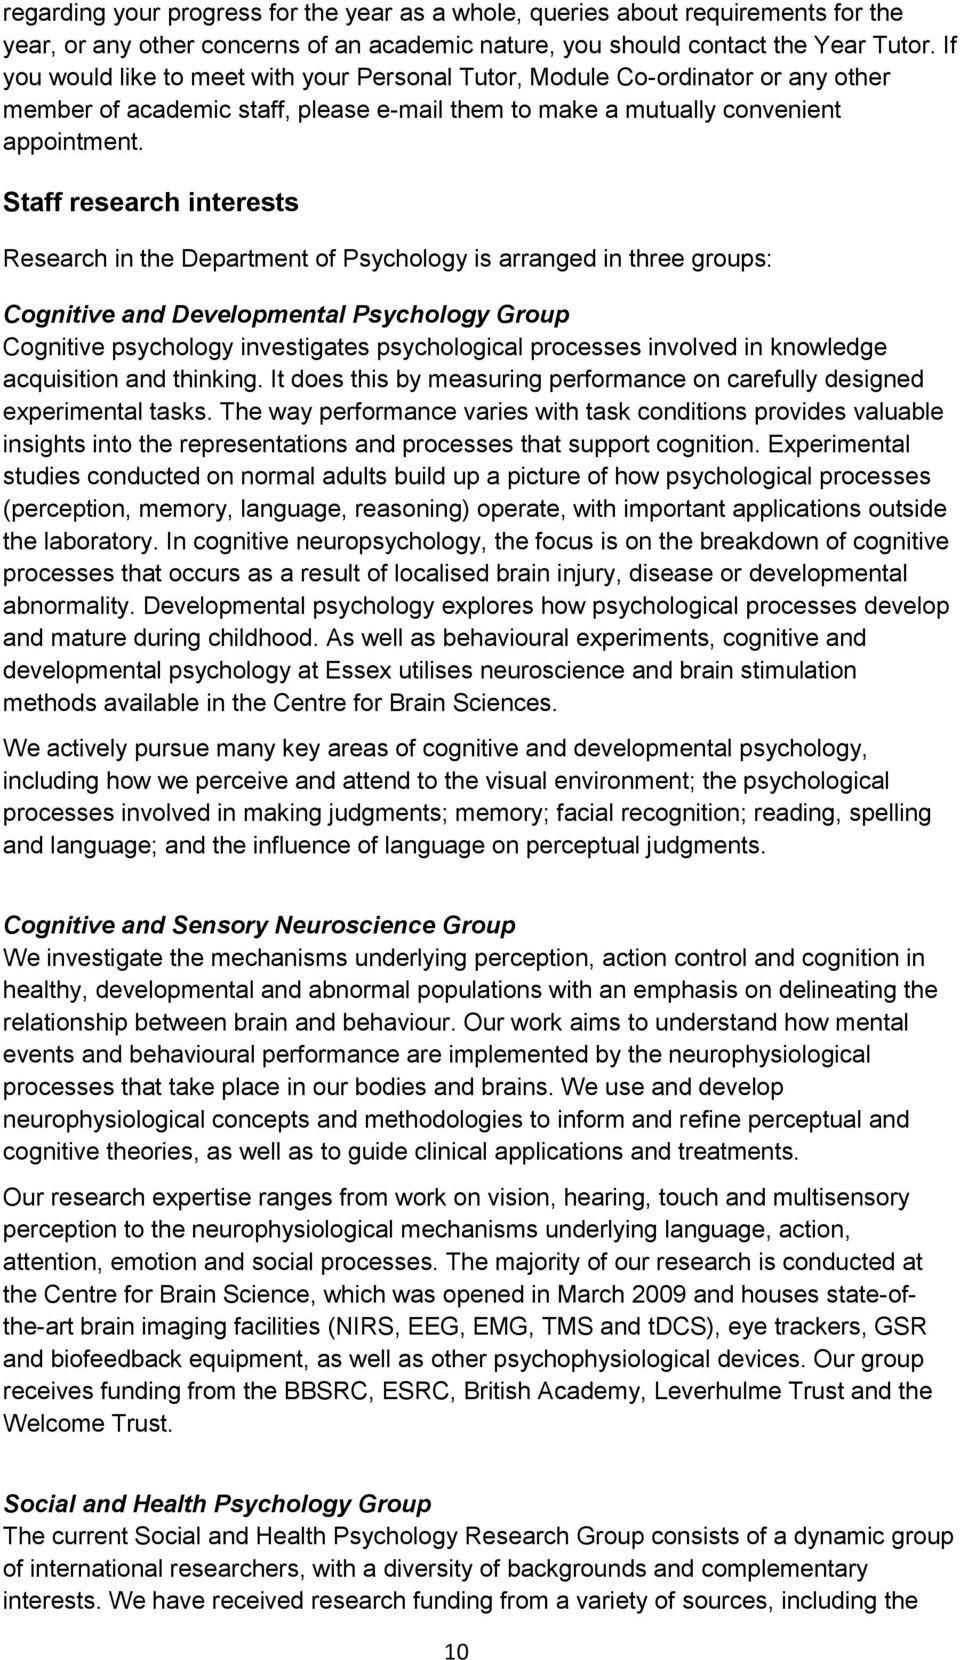 Staff research interests Research in the Department of Psychology is arranged in three groups: Cognitive and Developmental Psychology Group Cognitive psychology investigates psychological processes